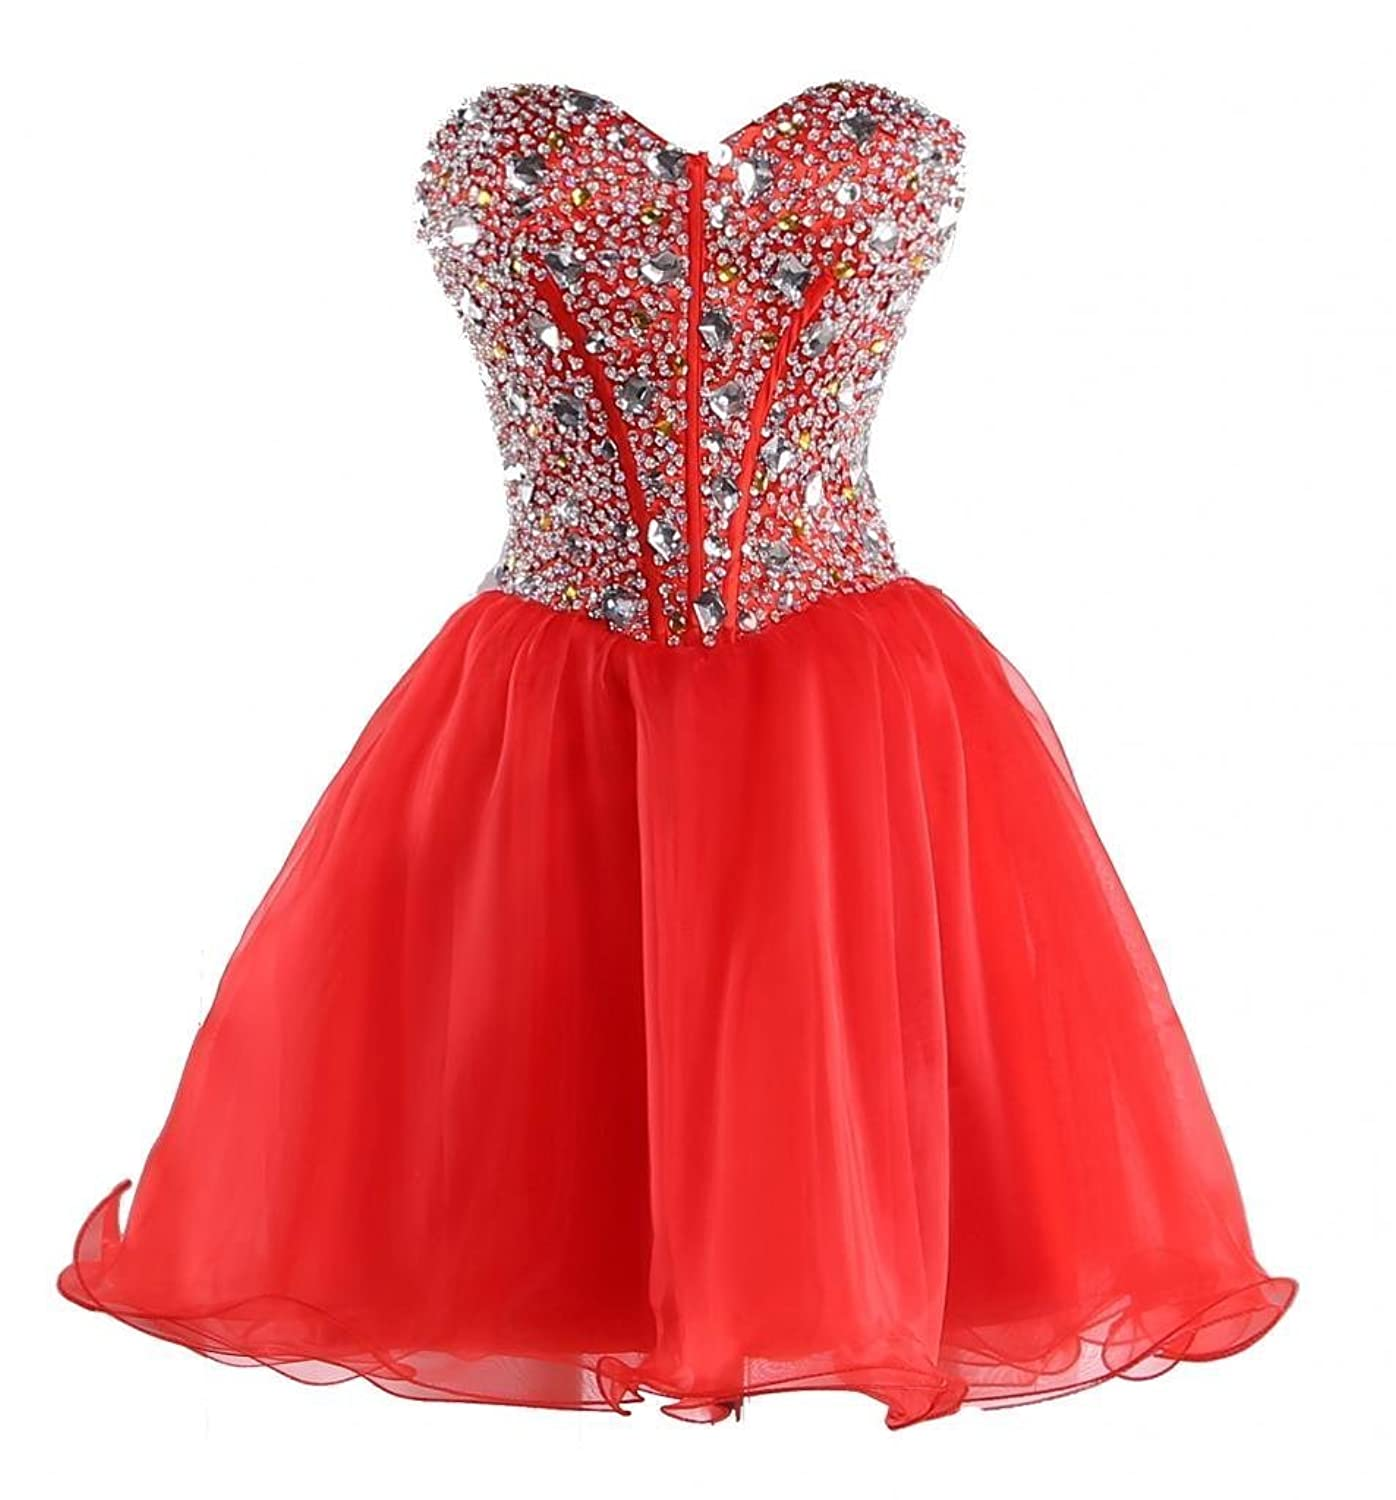 FNKS Women's Sweetheart Rhinestone Sequined Organza Short Homecoming Prom Dresses